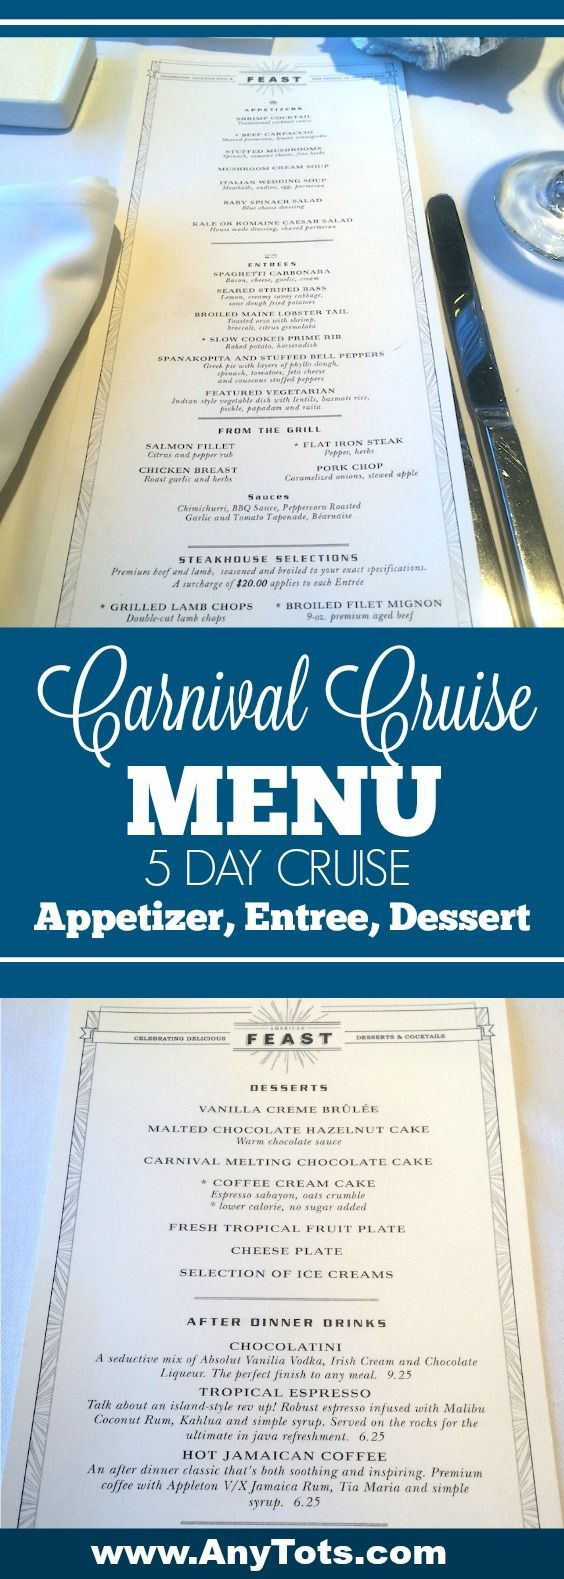 Check out all the Carnival Cruise Food including all the yummy appetizers you can order during the sit down dinner. This is from a 5 day cruise with Carnival. We've posted the Carnival Cruise Menu so you can check if anything fits your diet or liking. Visit www.anytots.com for more cruise tips.